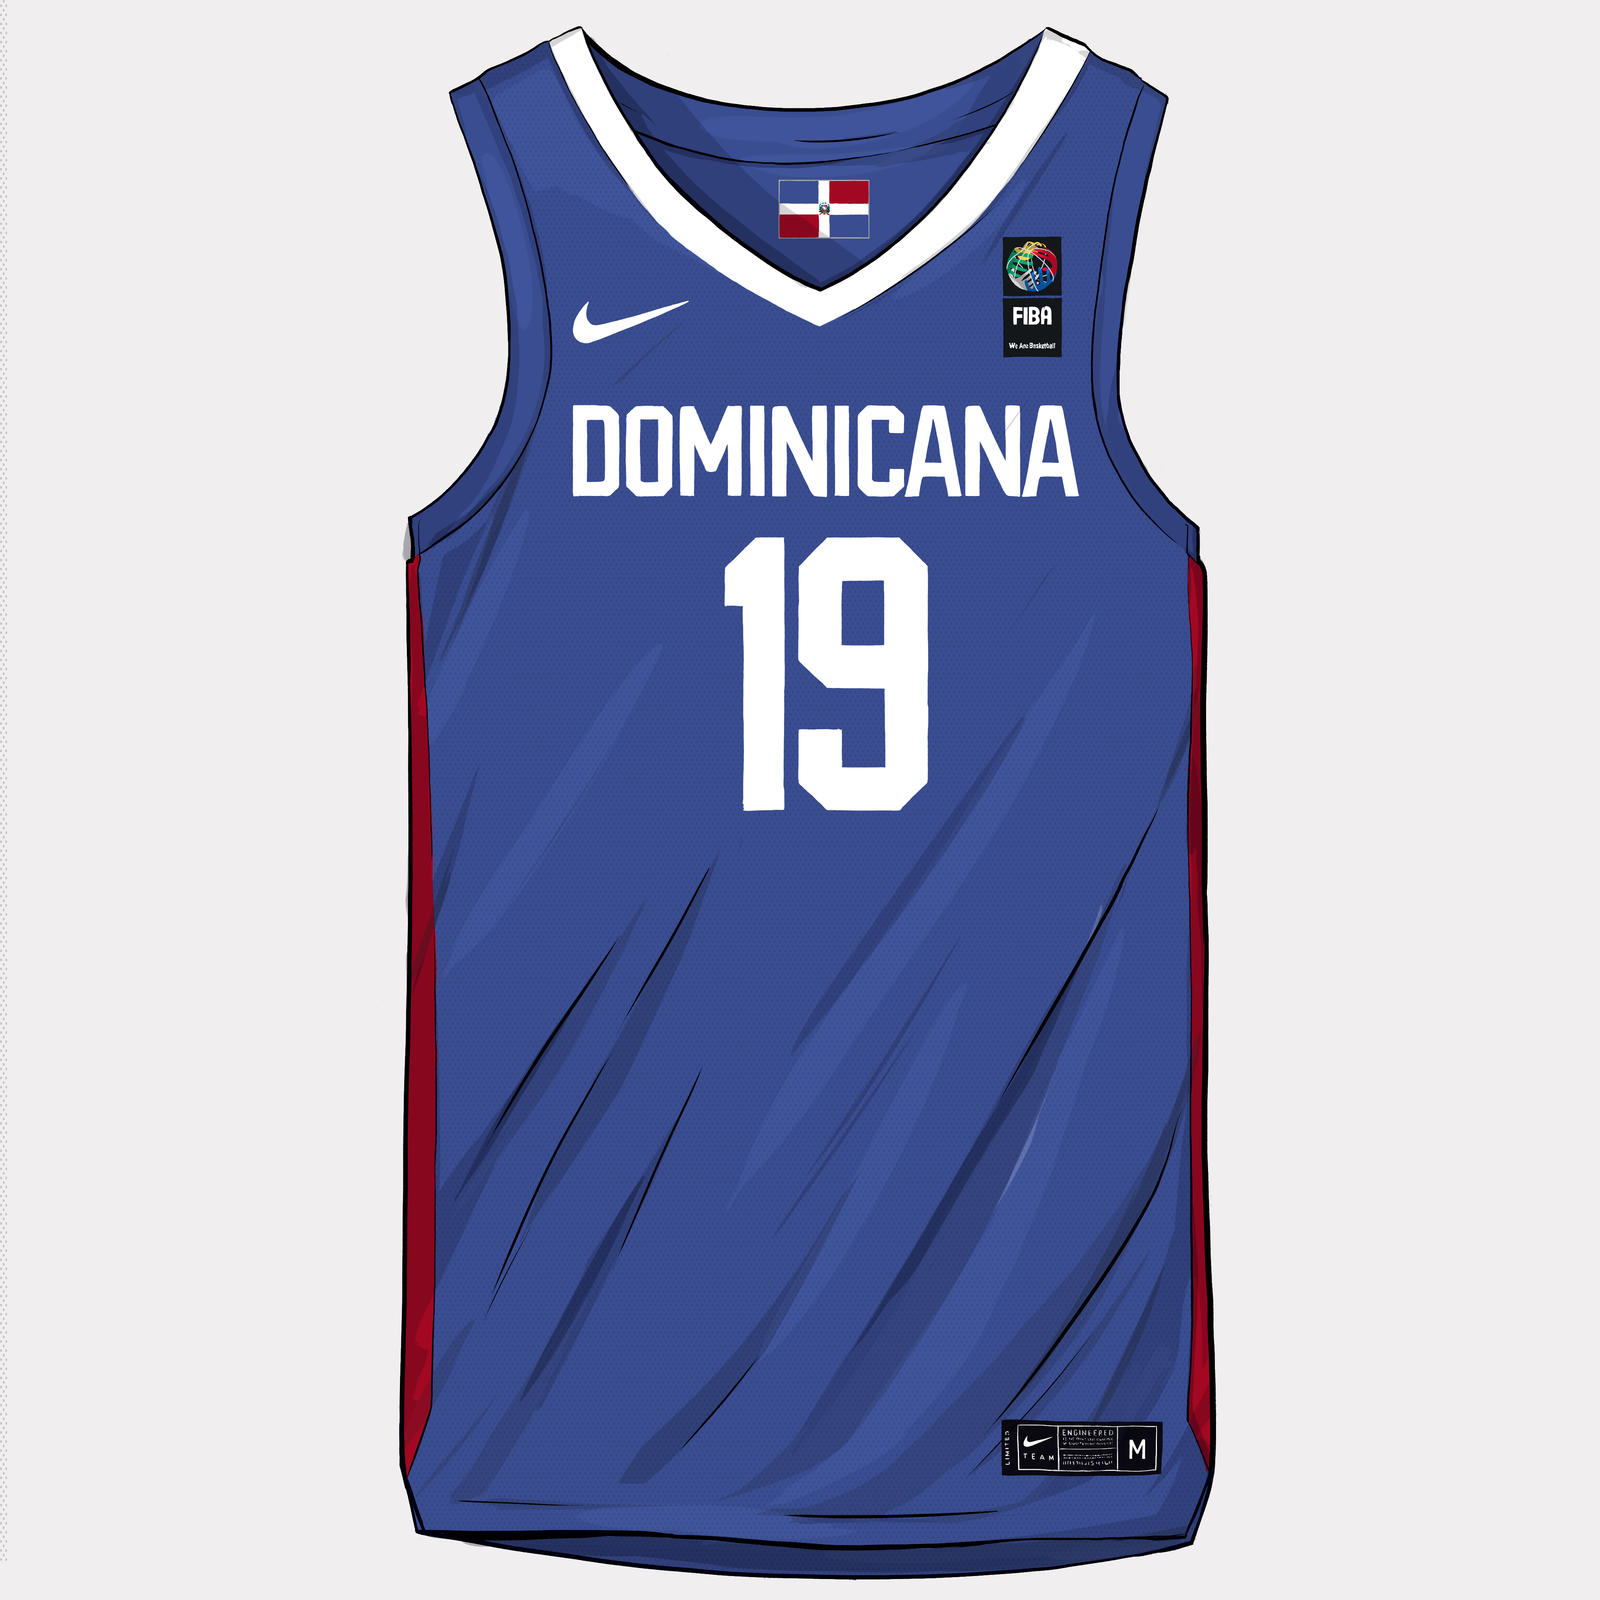 FIBA World Cup 2019 Uniforms 2